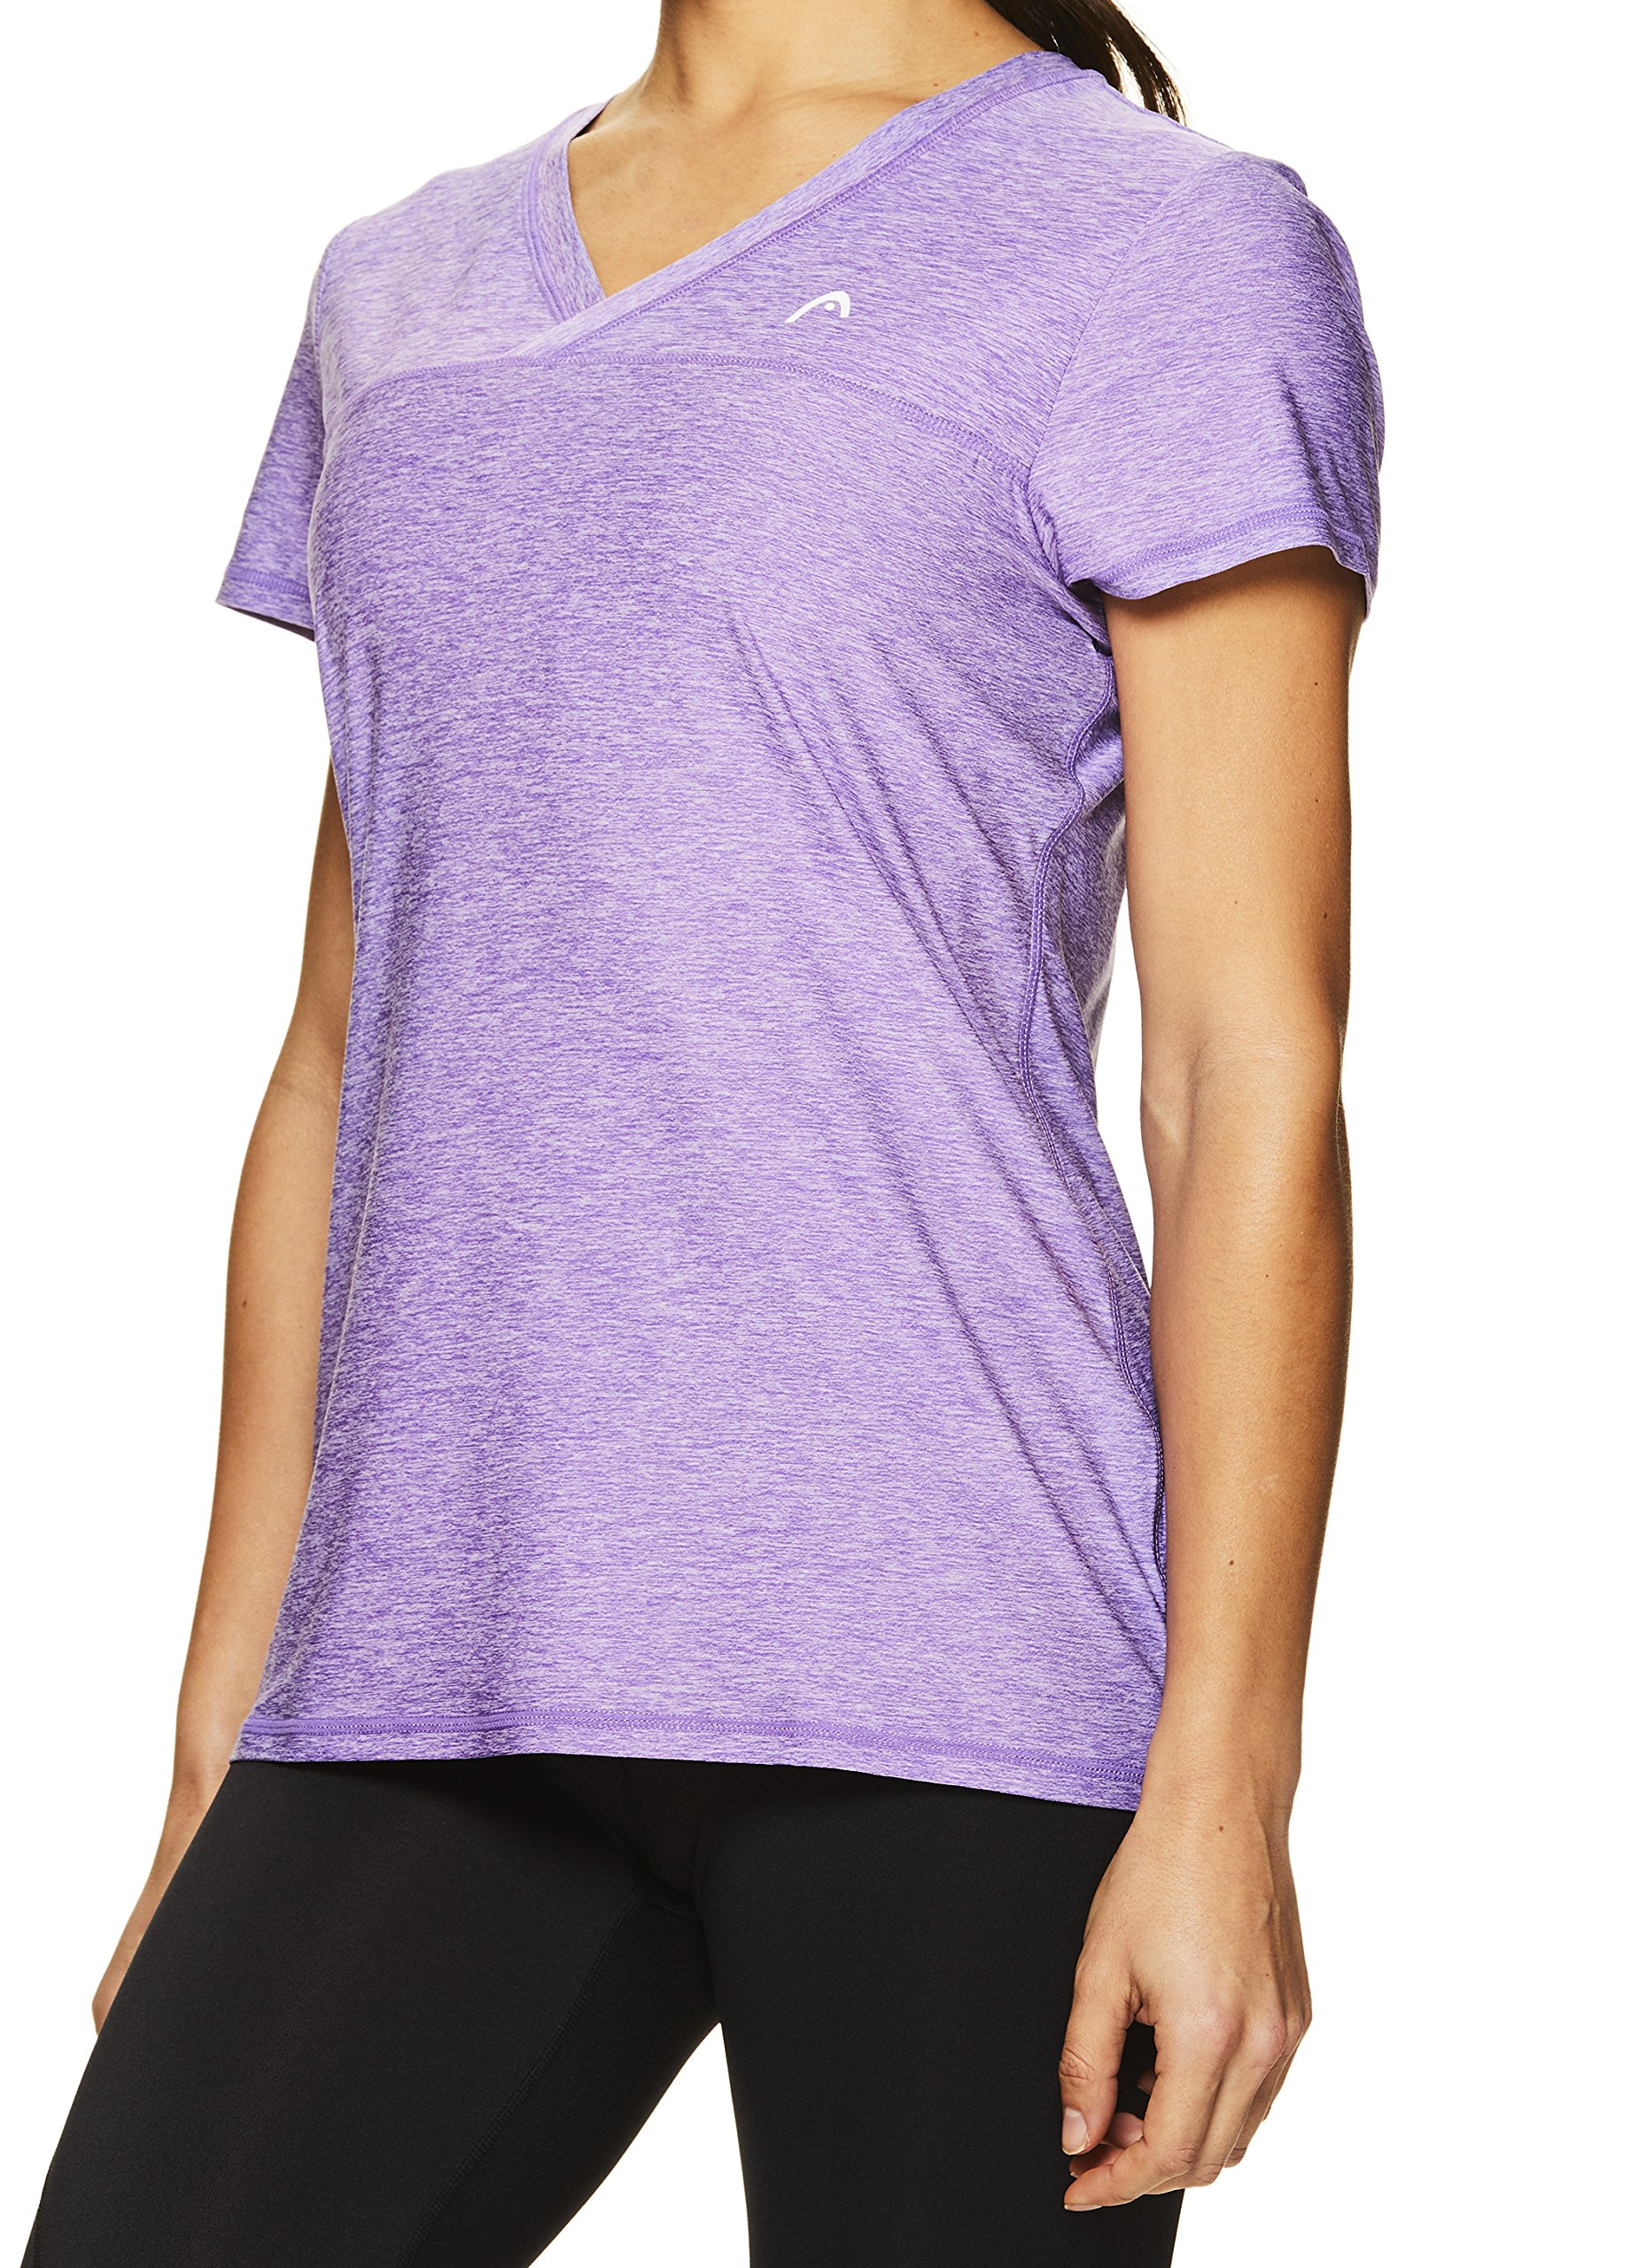 HEAD Women's High Jump Short Sleeve Workout T-Shirt - Performance V-Neck Activewear Top - Chive Blossom Heather, X-Small by HEAD (Image #4)